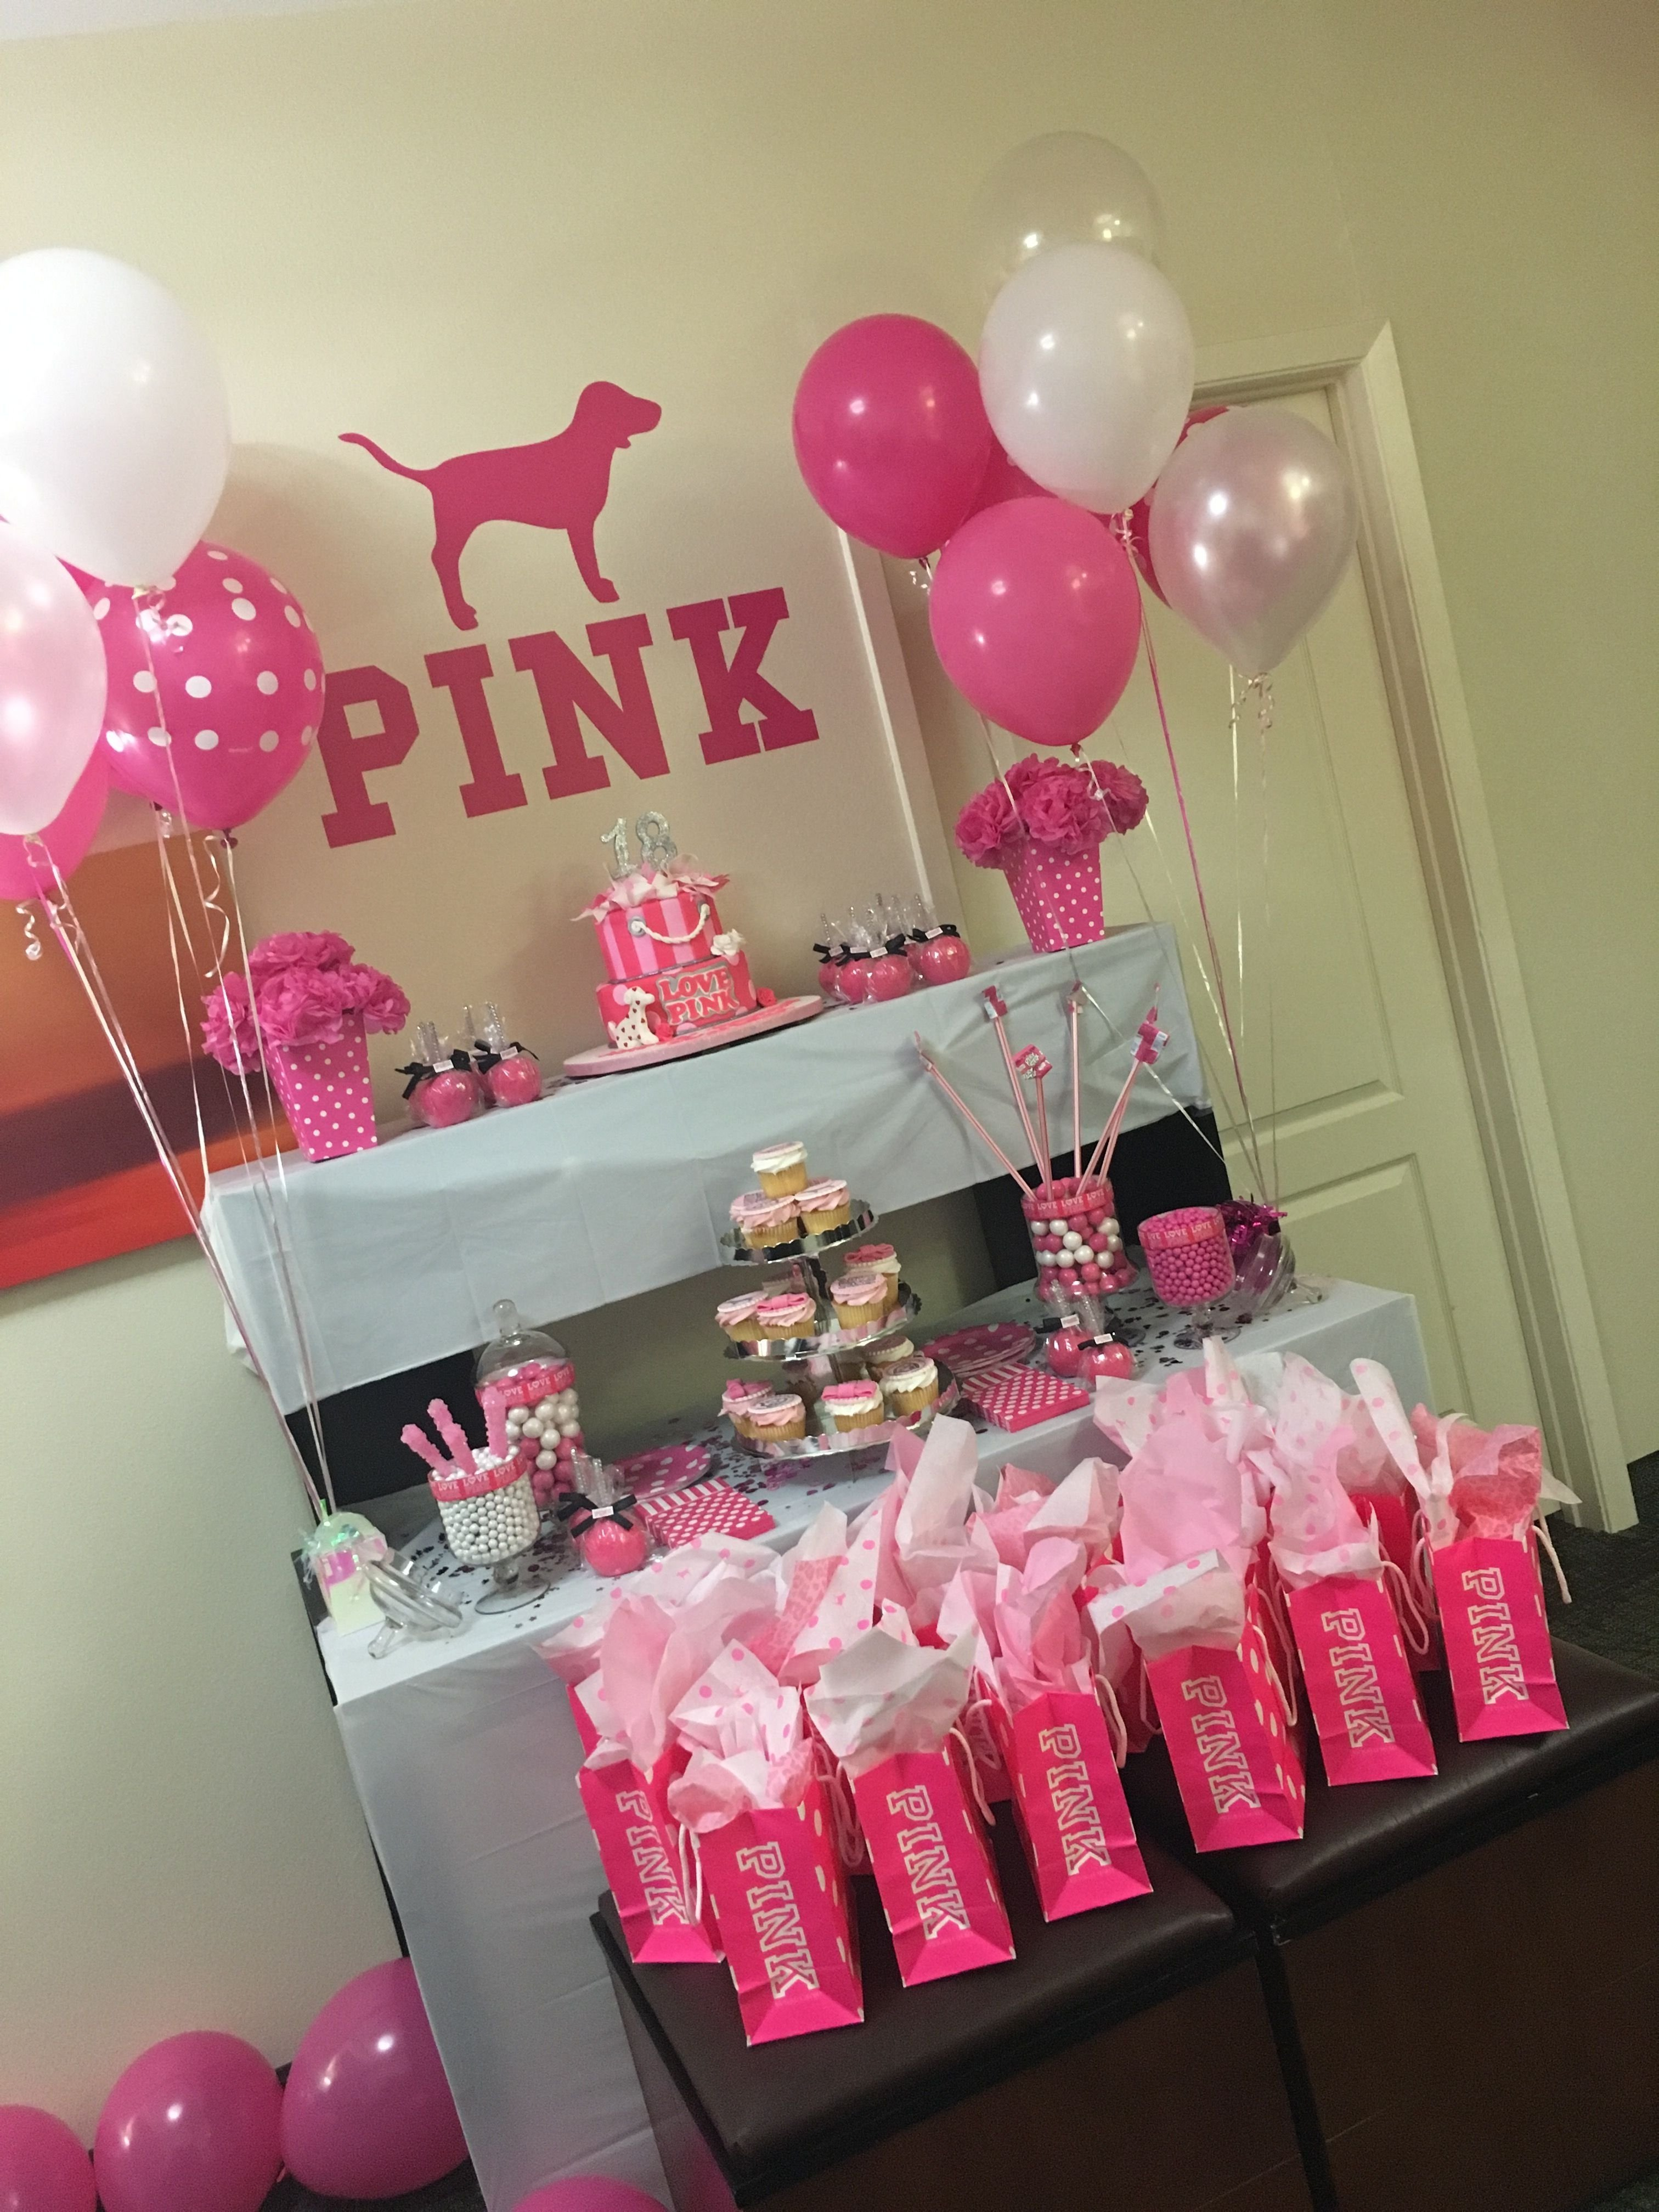 10 Pretty Ideas For A 13Th Birthday Party pink party pinteres 15 2021